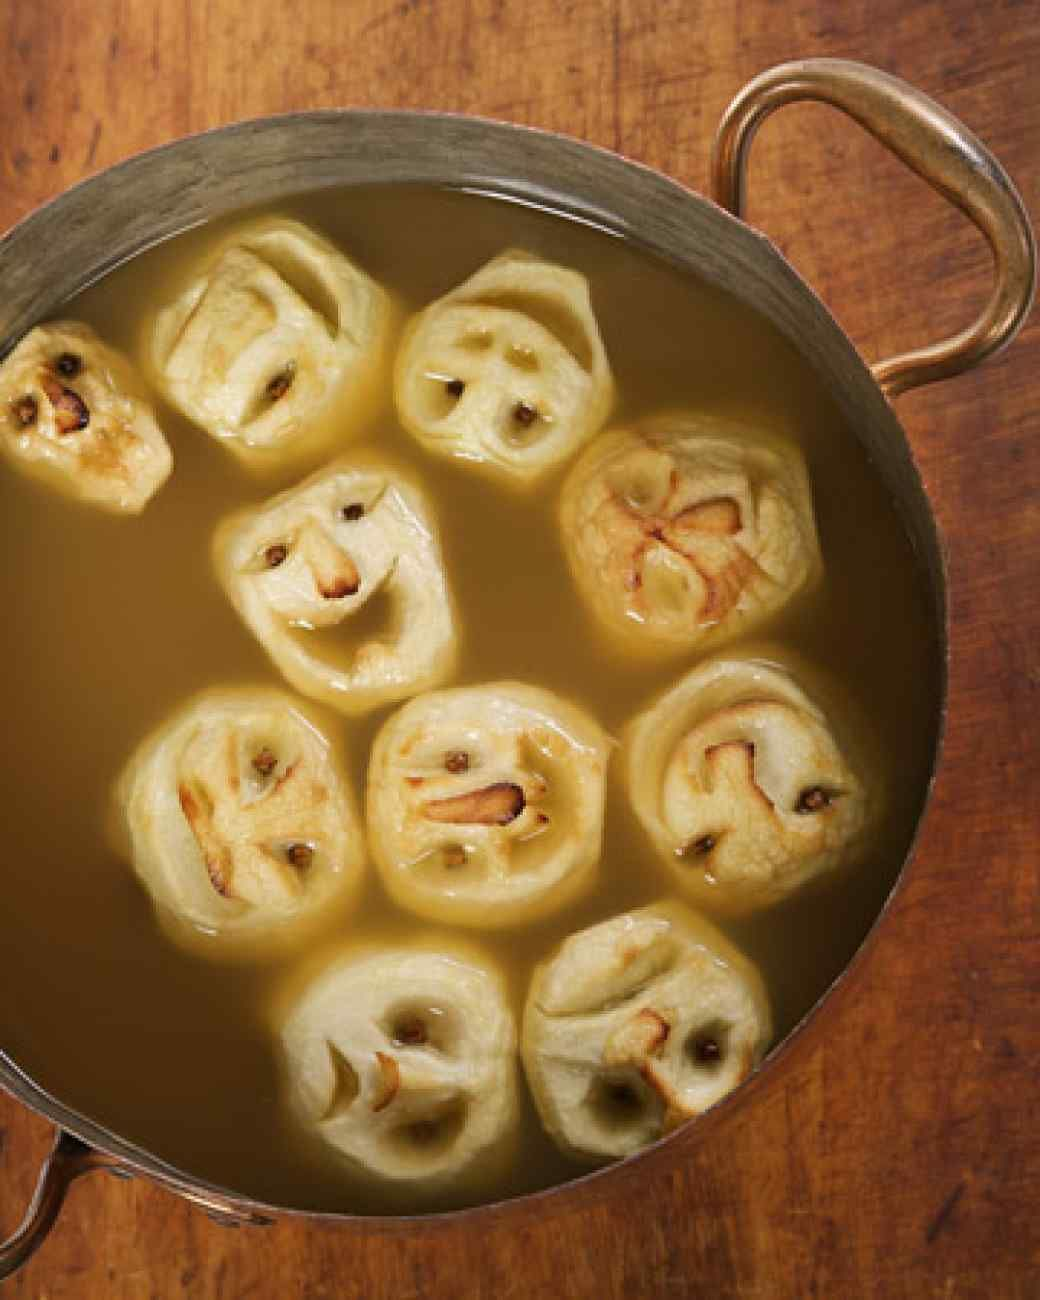 Have a look at Shrunken Heads in Cider. It's so easy to make ...